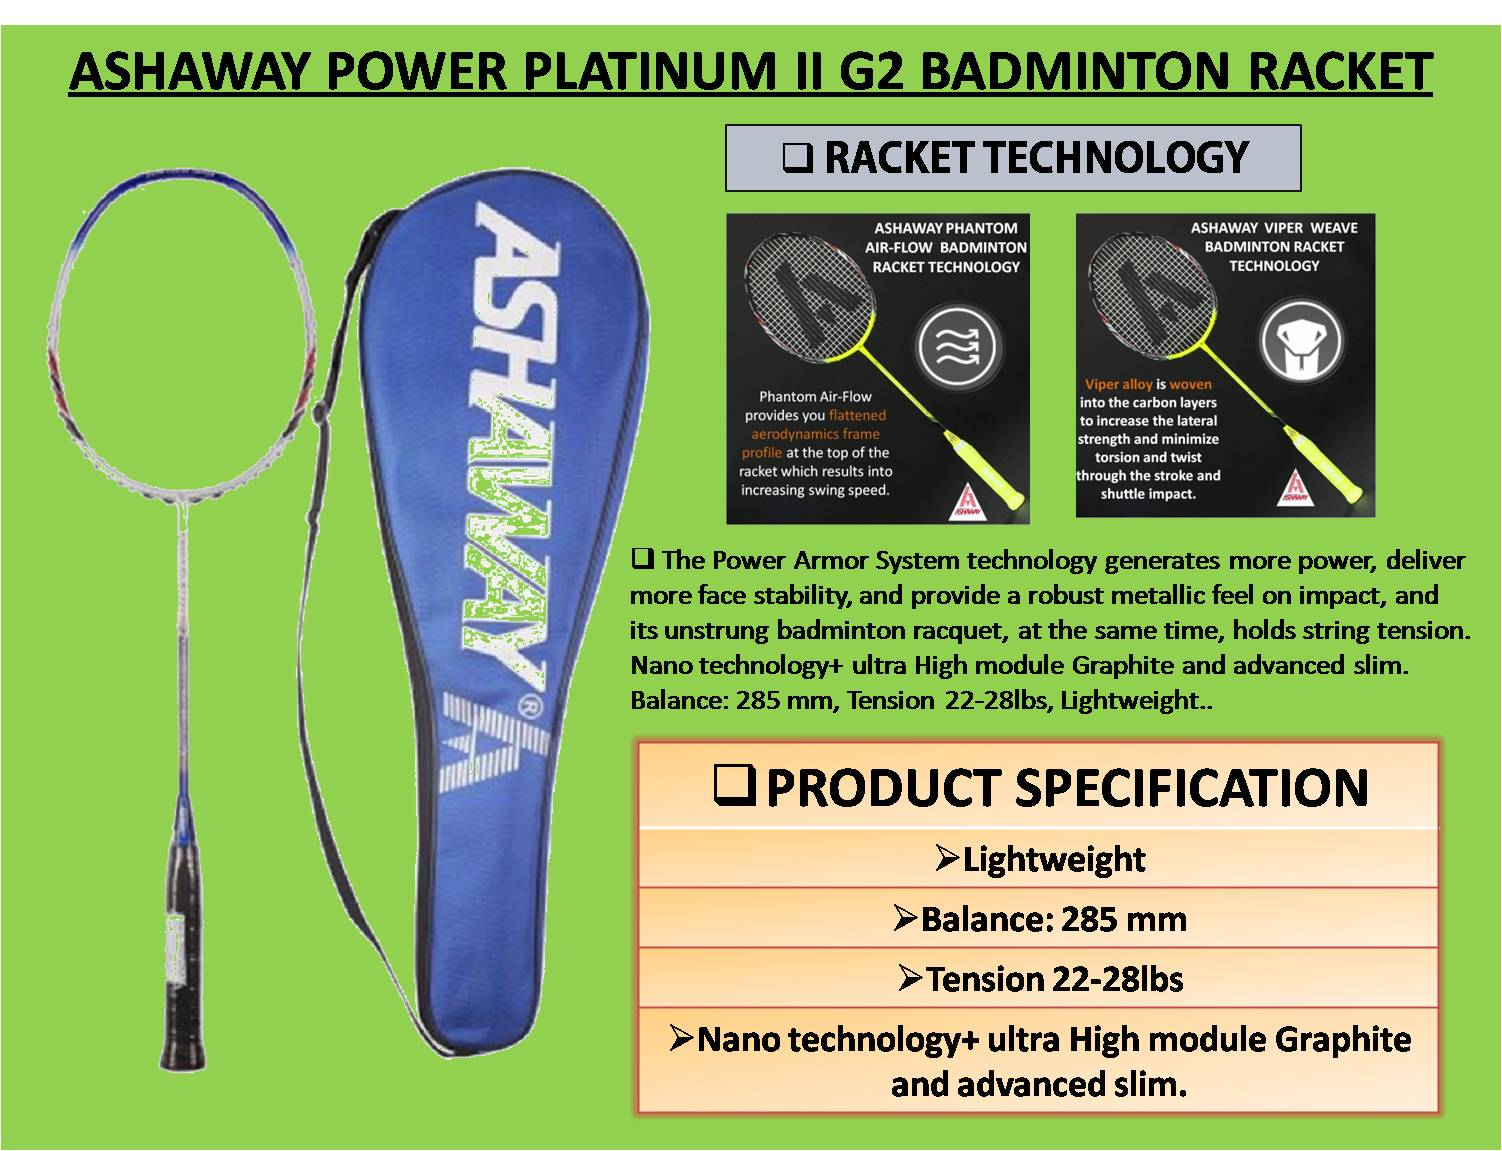 ASHAWAY POWER PLATINUM II G2 BADMINTON RACKET